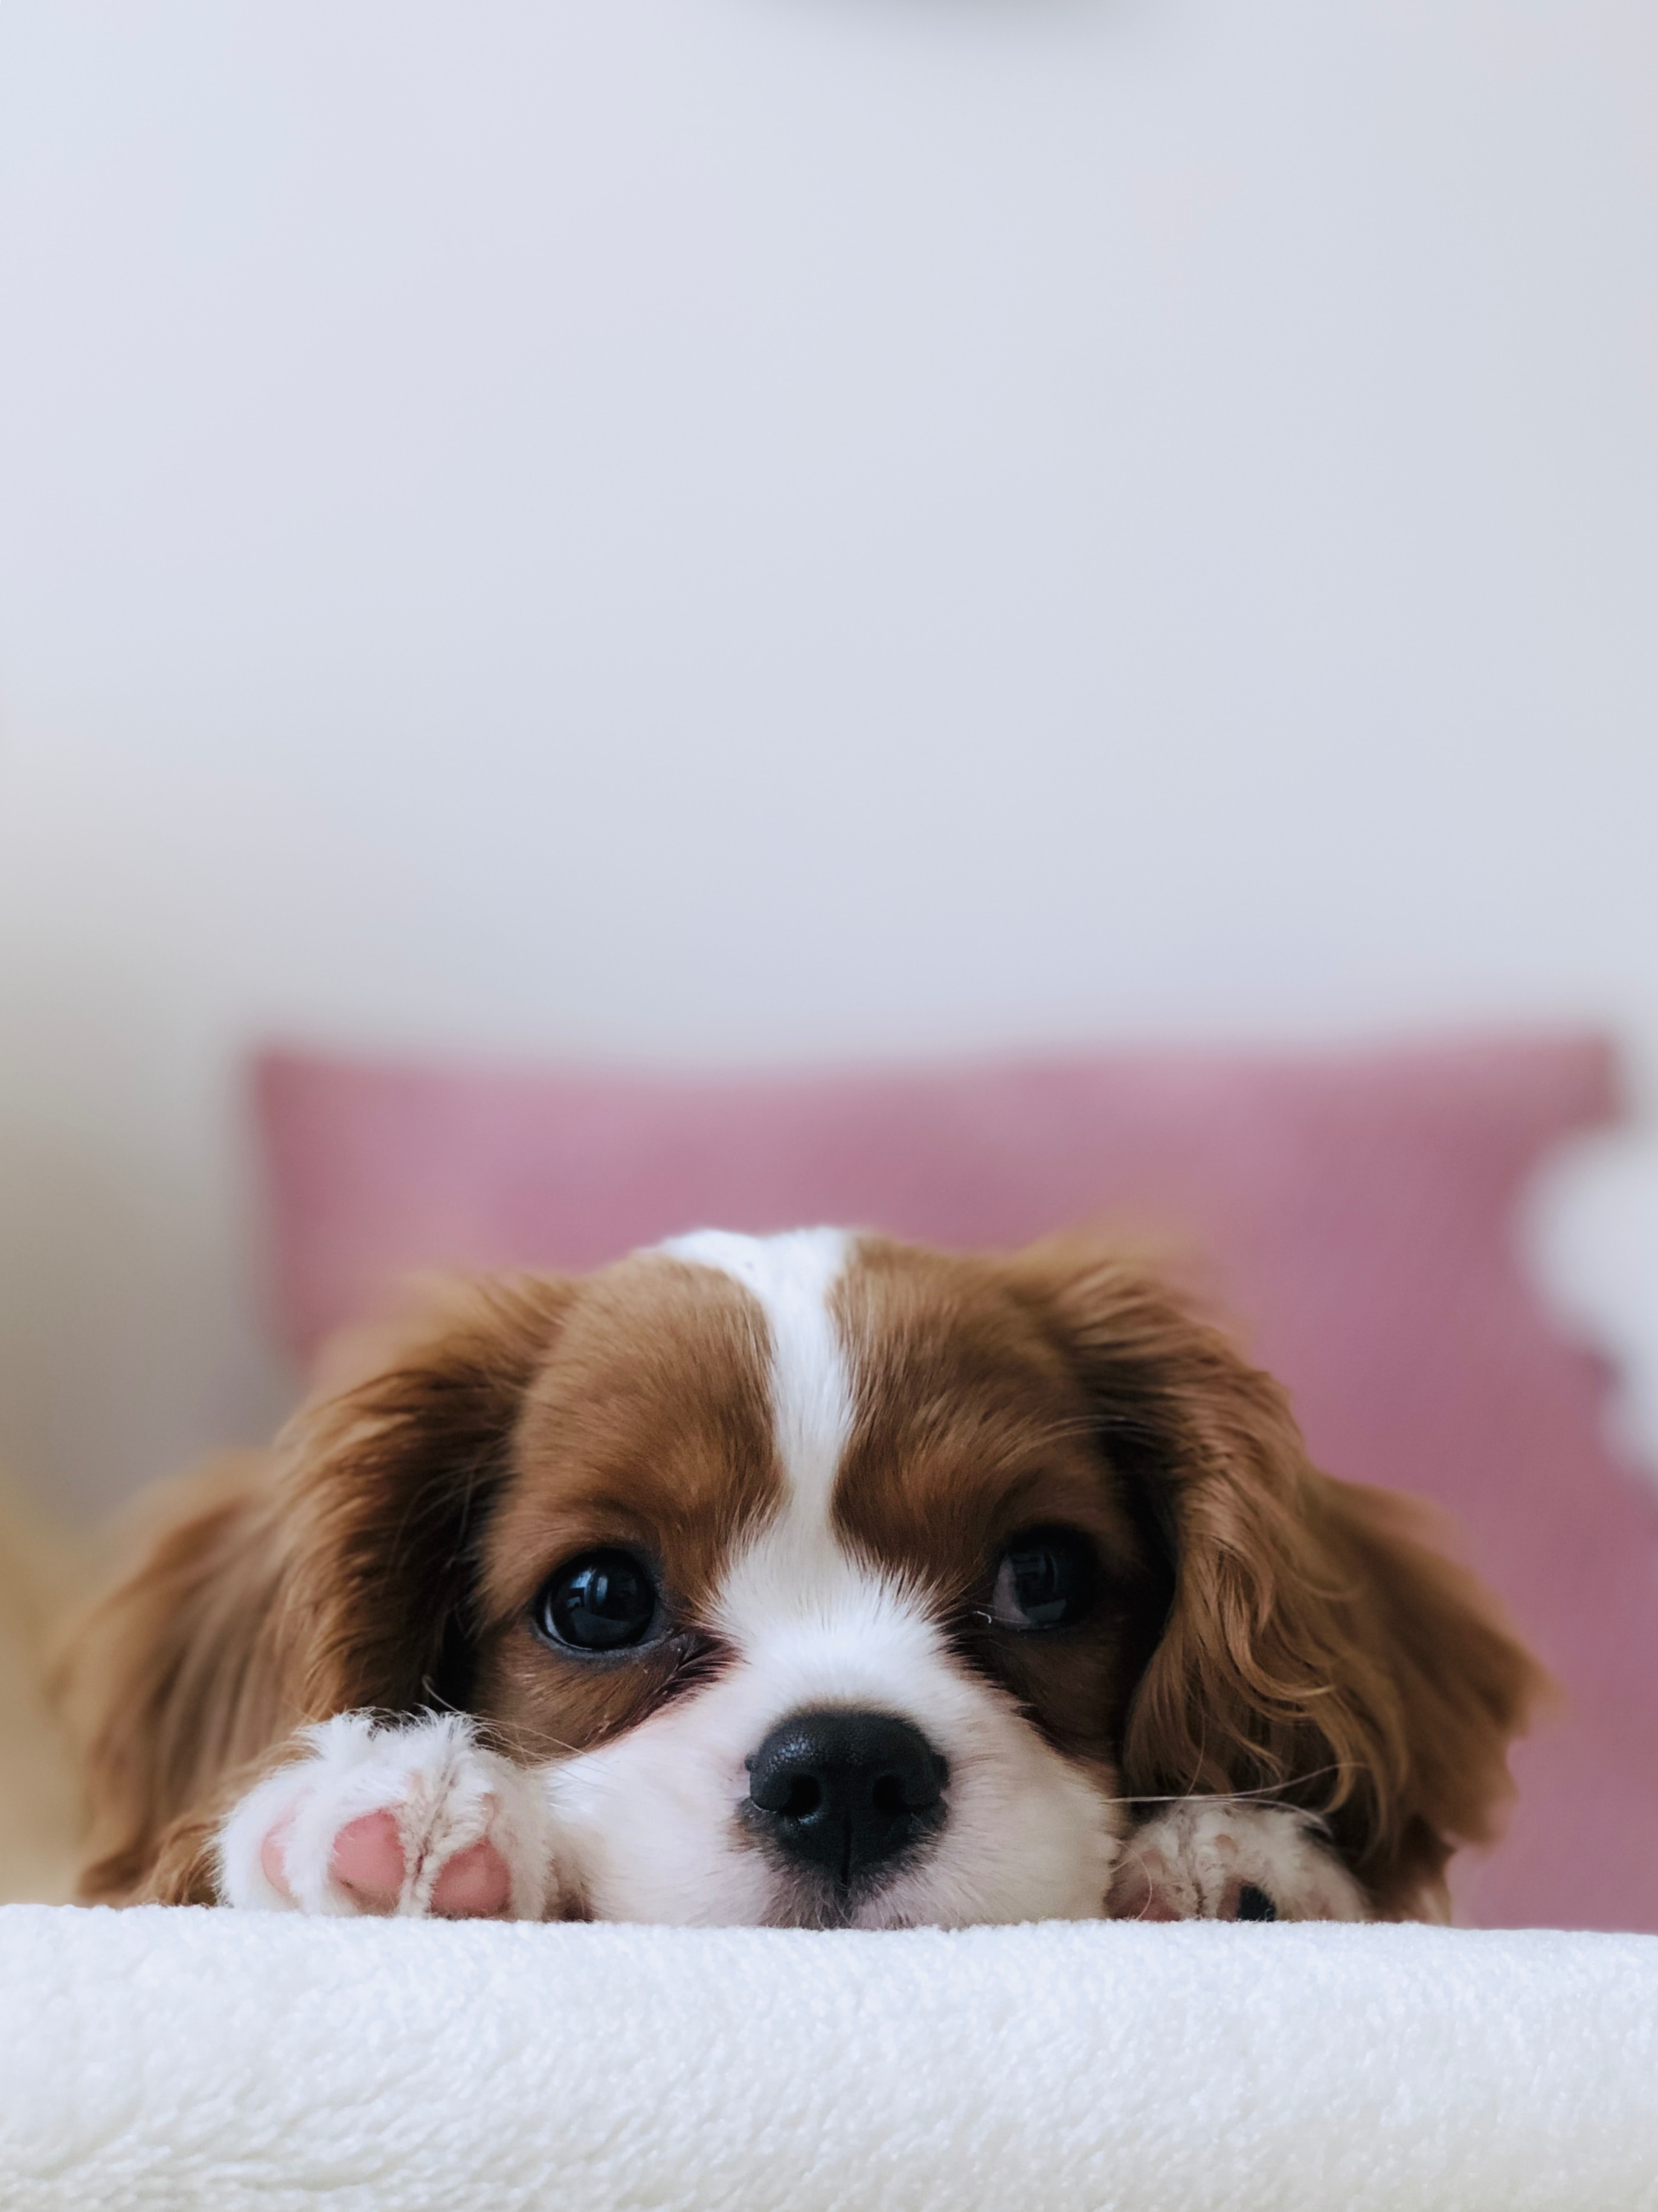 White and brown puppy.